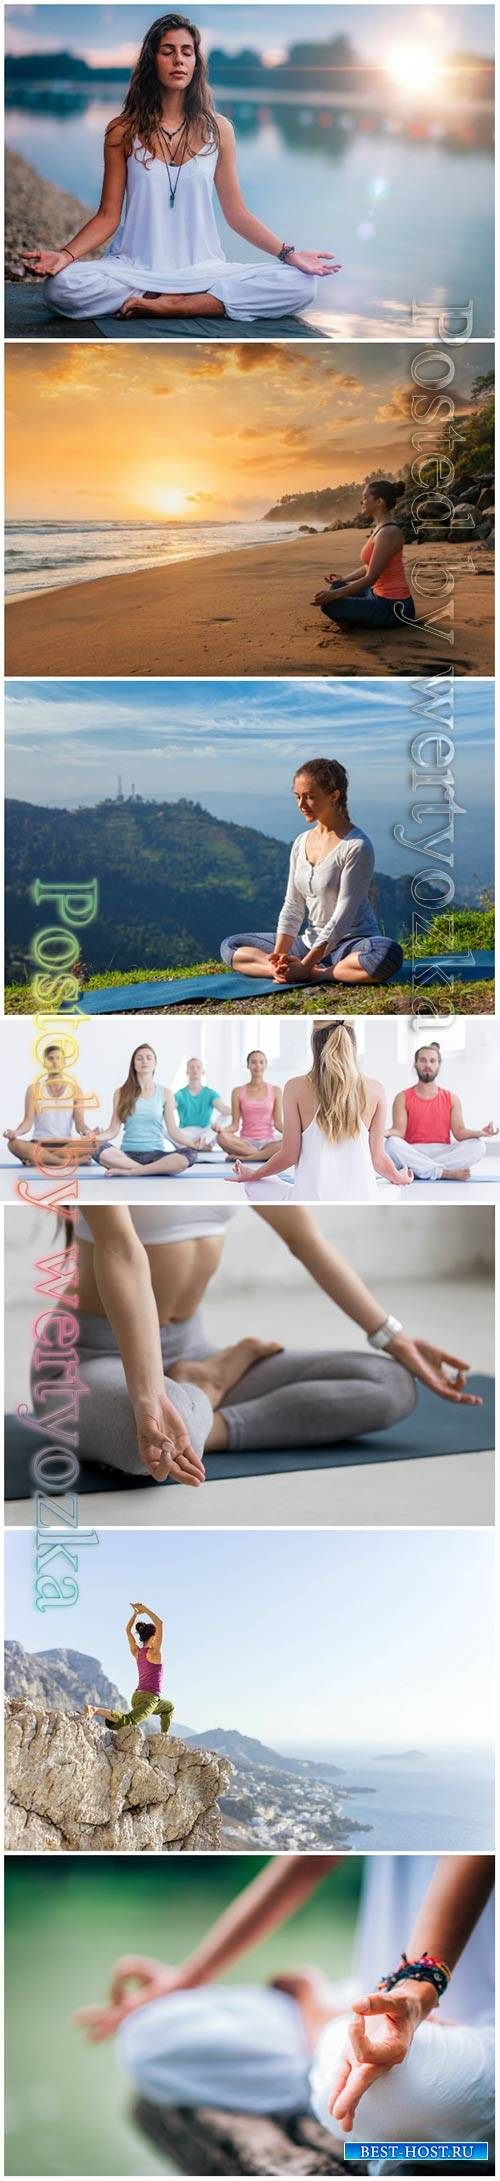 Yoga beautiful stock photo